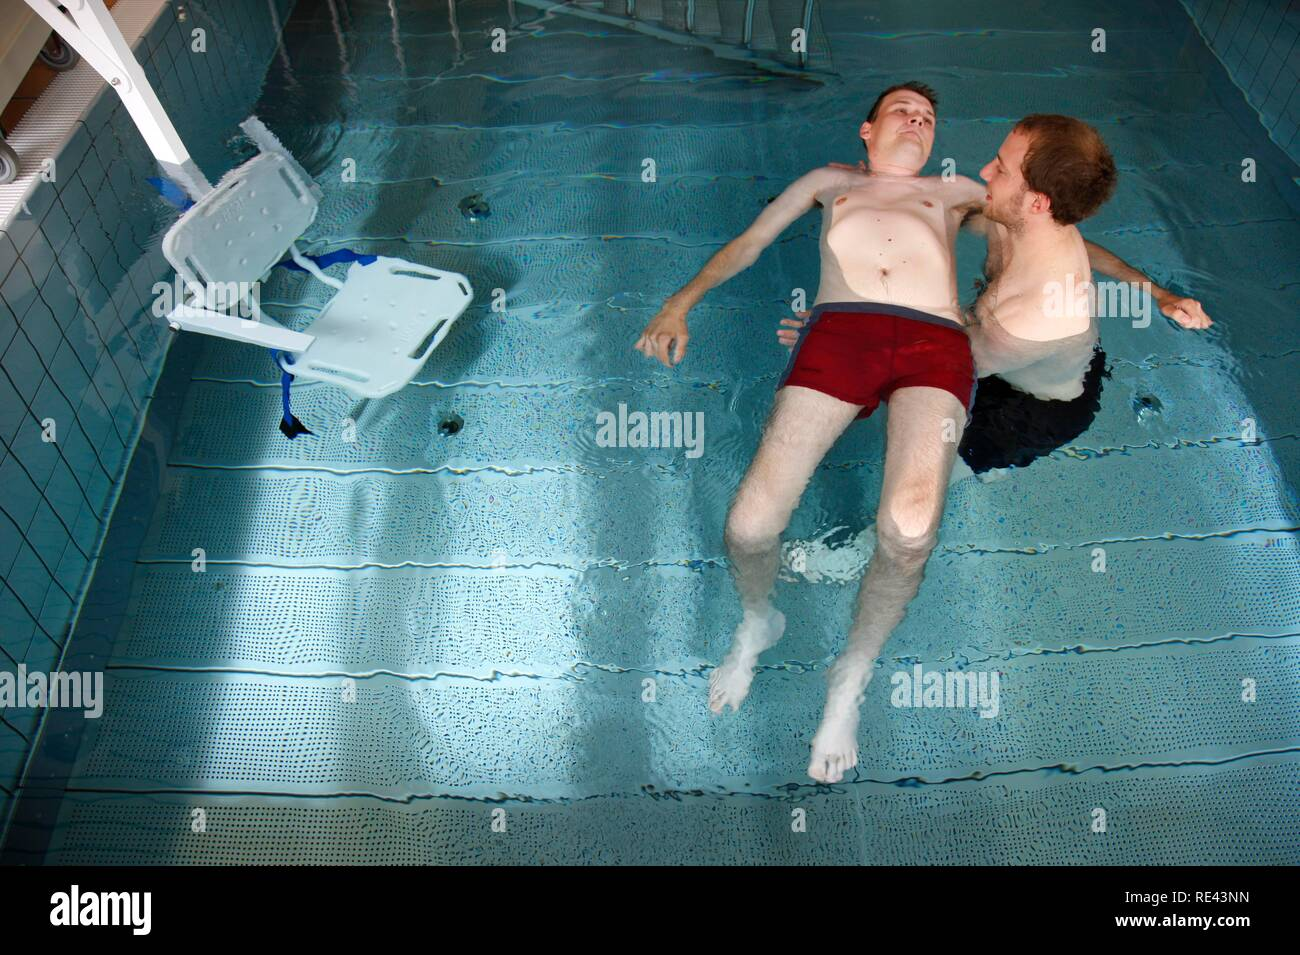 Individual Therapy In A Heated Pool Physical Therapy In A Neurological Rehabilitation Centre Bonn North Rhine Westphalia Stock Photo Alamy